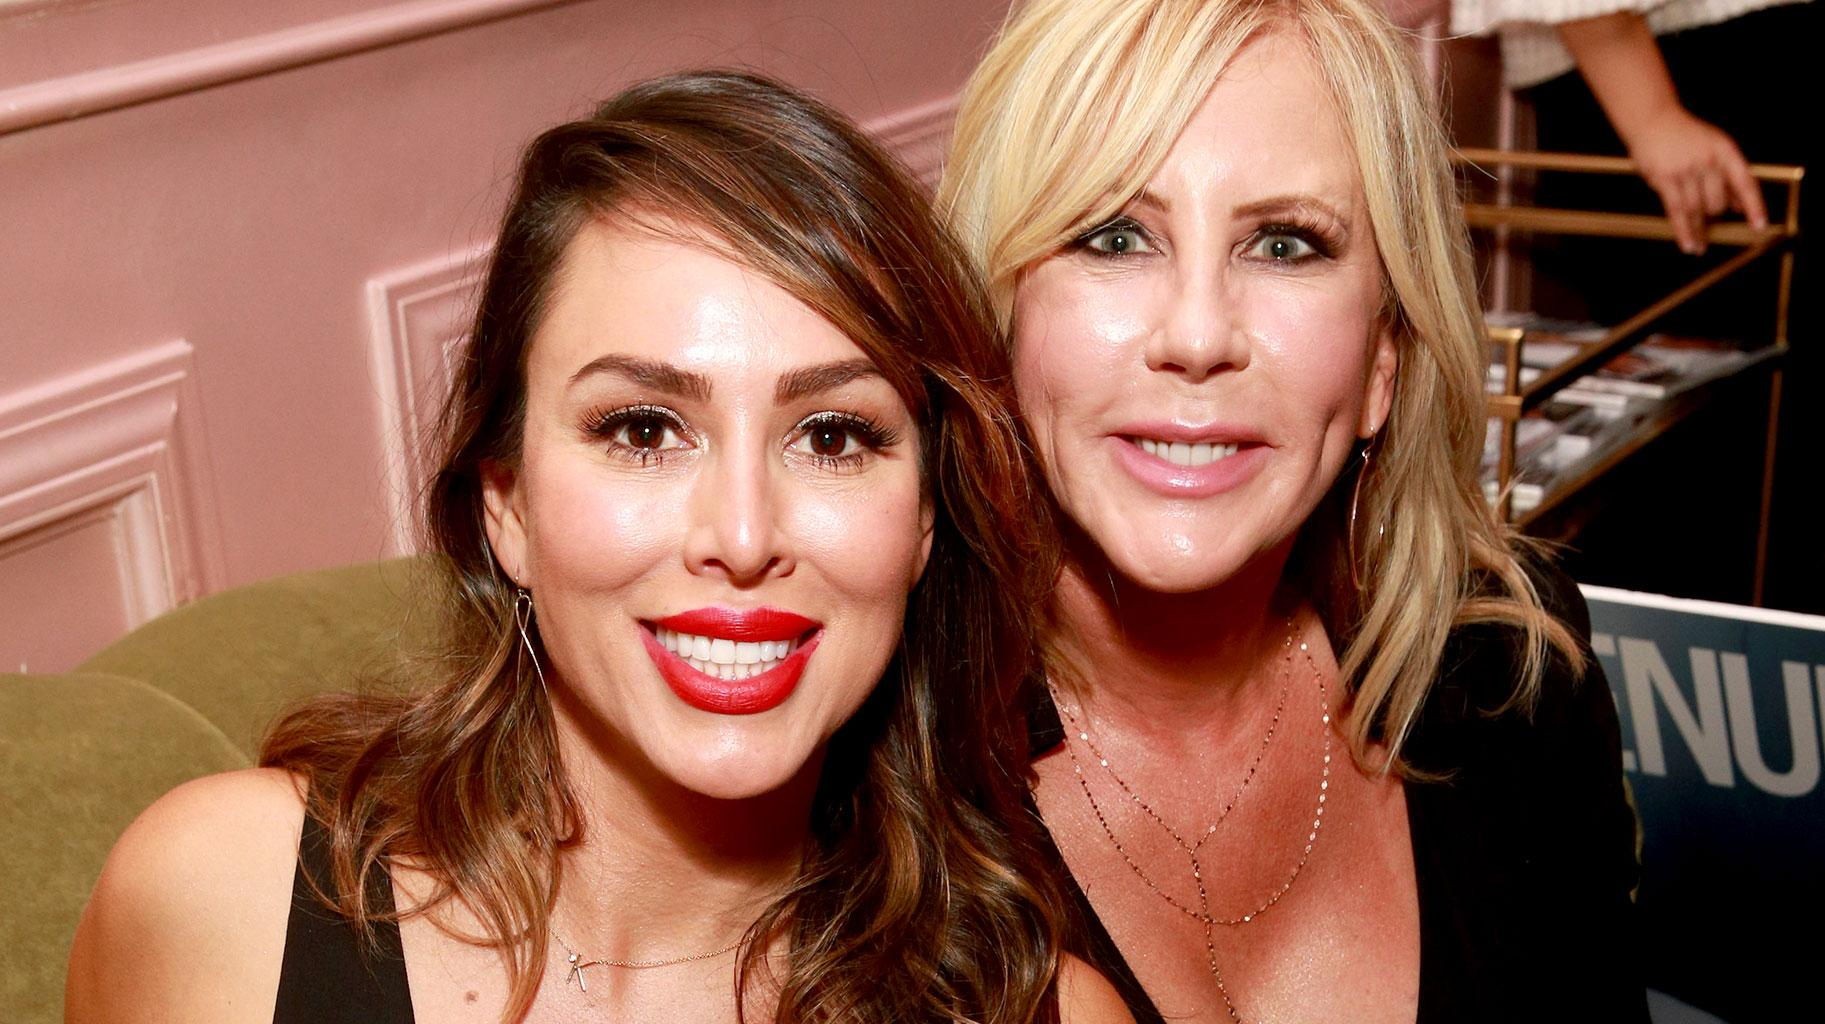 Kelly Dodd And Vicki Gunvalson Hug At The RHOC Reunion Taping, Insider Reveals - The Enemies Shocked Everyone On Set!